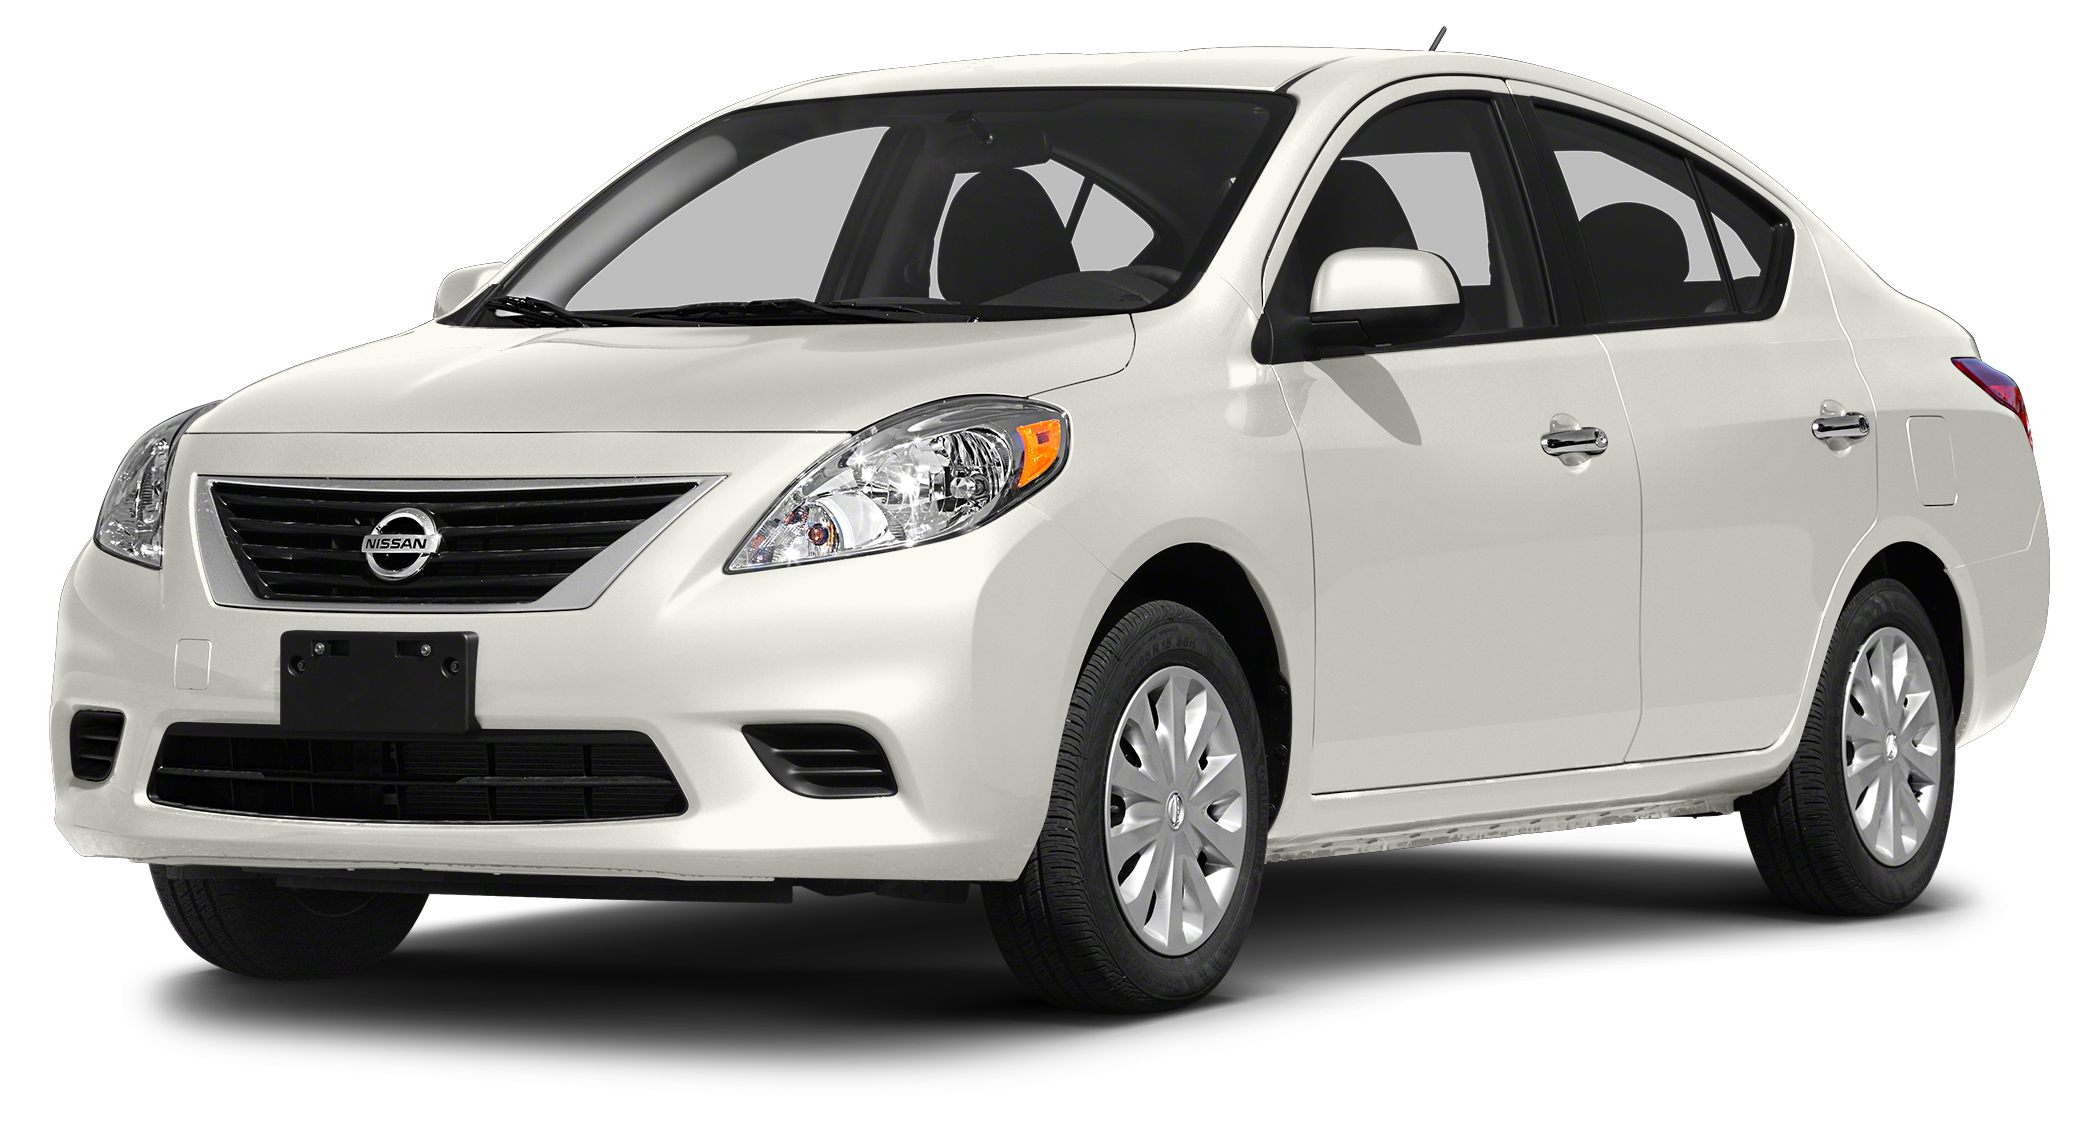 2014 Nissan Versa 16 S Miles 37759Color Fresh Powder Stock K15334A VIN 3N1CN7AP5EL844082